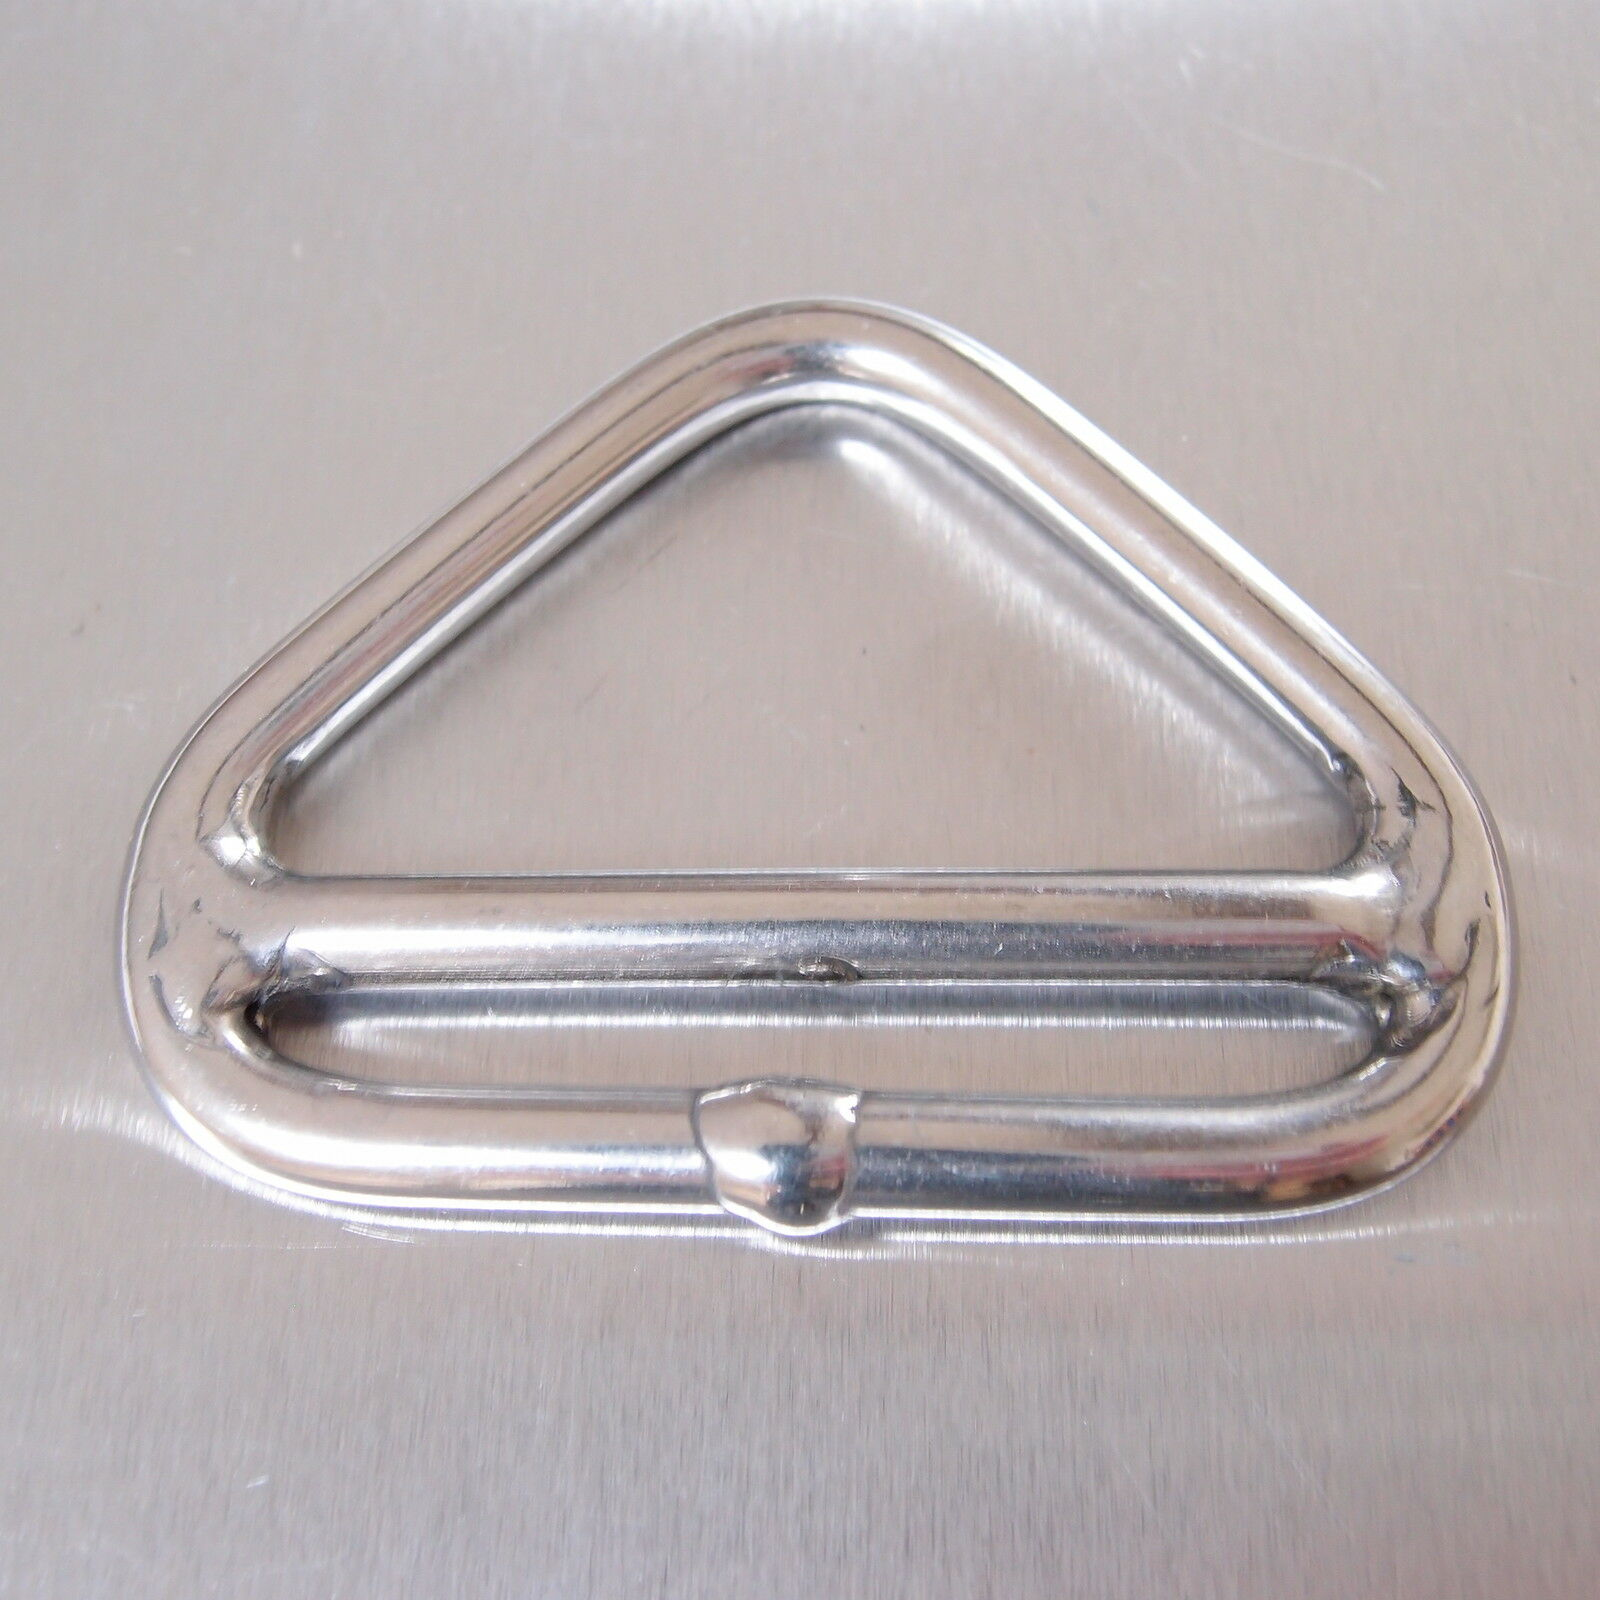 Stainless Steel 316 Double Bar Triangular Link Ring 8mm x 50mm